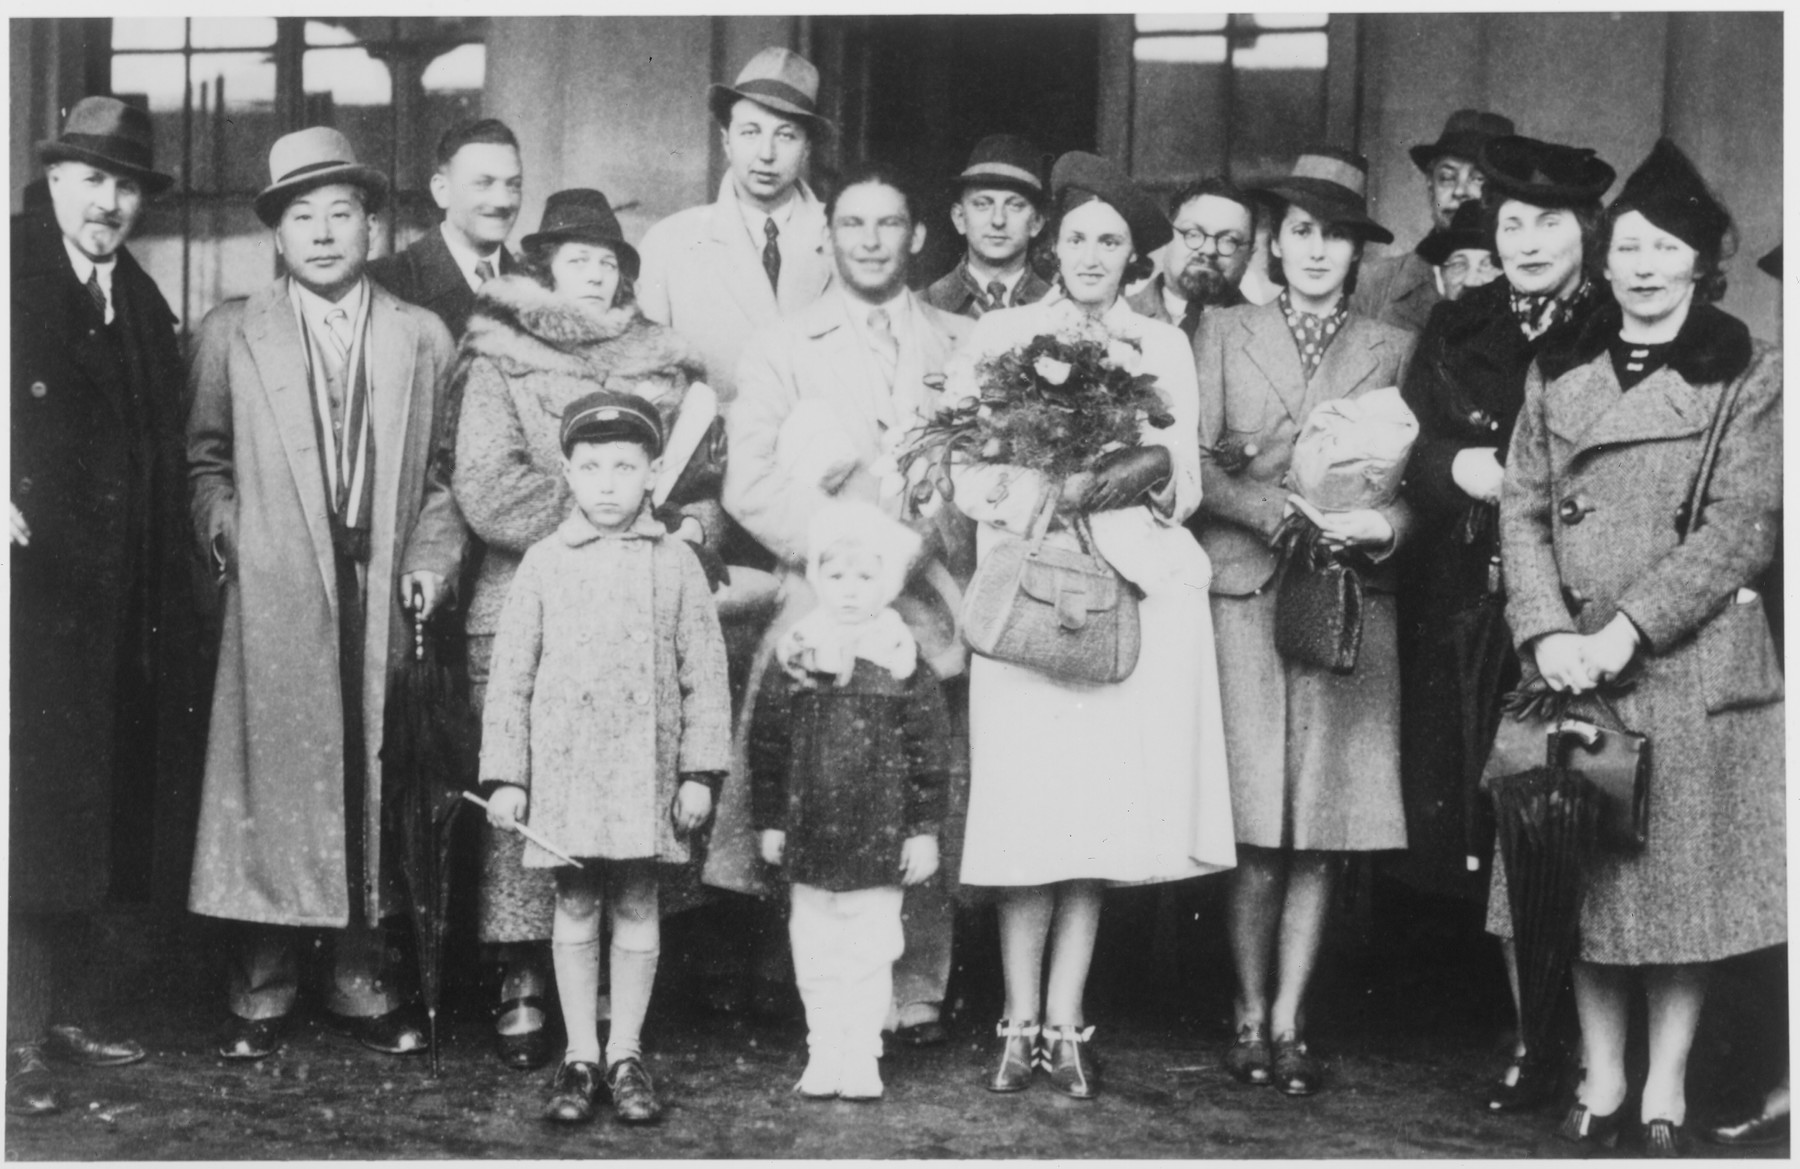 Chiune Sugihara poses with a group of people at the railroad station in Kaunas on the occasion of the departure of Polish army lieutenant Stanislaw Kaspcik and his wife, Stella Kominskaya.    Sugihara helped Kaspik, who was a well-known anti-Bolshevik, to escape from Soviet controlled Kaunas.  Kaspik and his wife are pictured in the center.